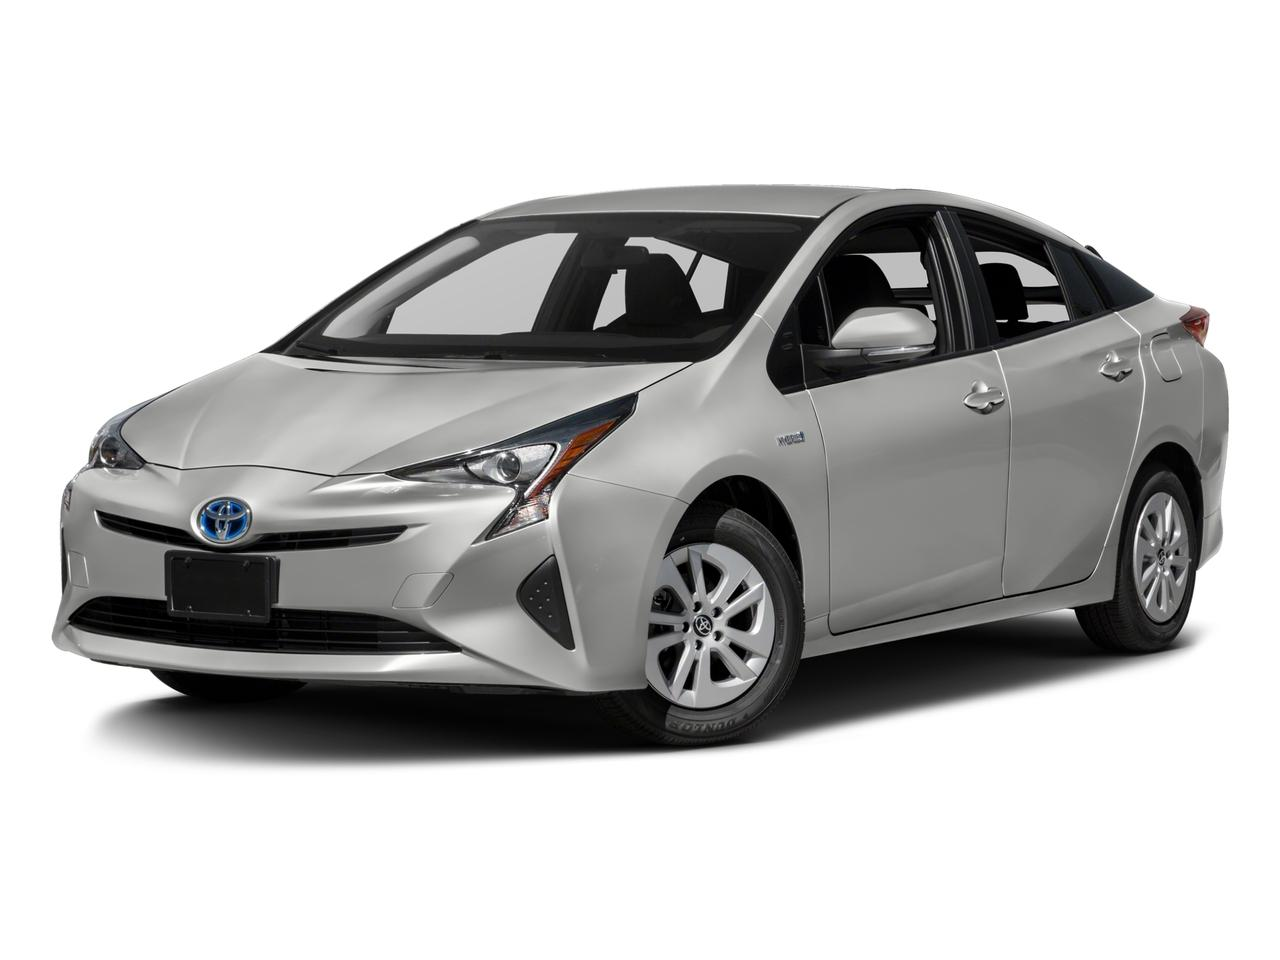 2016 Toyota Prius Vehicle Photo in Annapolis, MD 21401